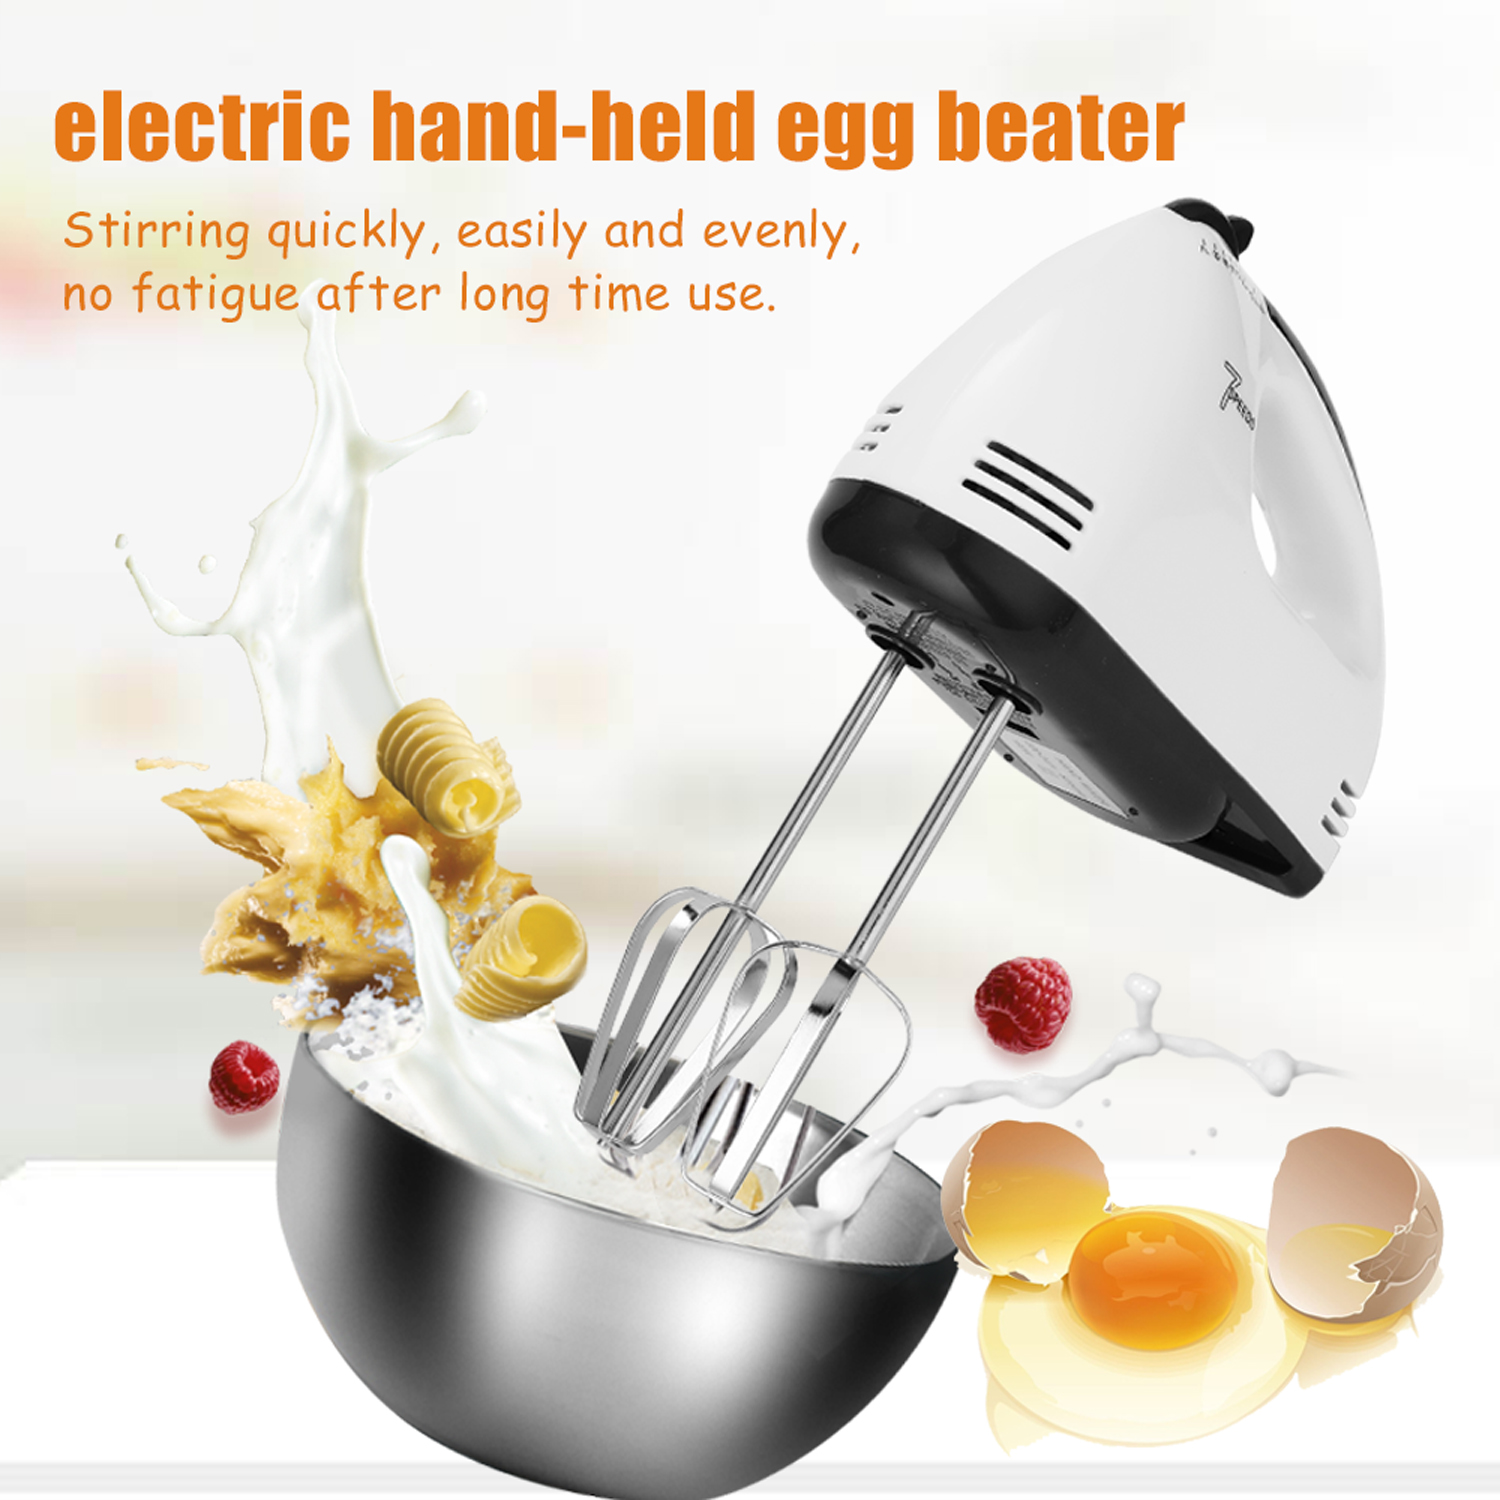 Handheld Electric Egg Beater Machine 7 Speed Adjustable Mixer Pastry Blender For Food Processor Egg Tools Kitchen Mixer EU Plug